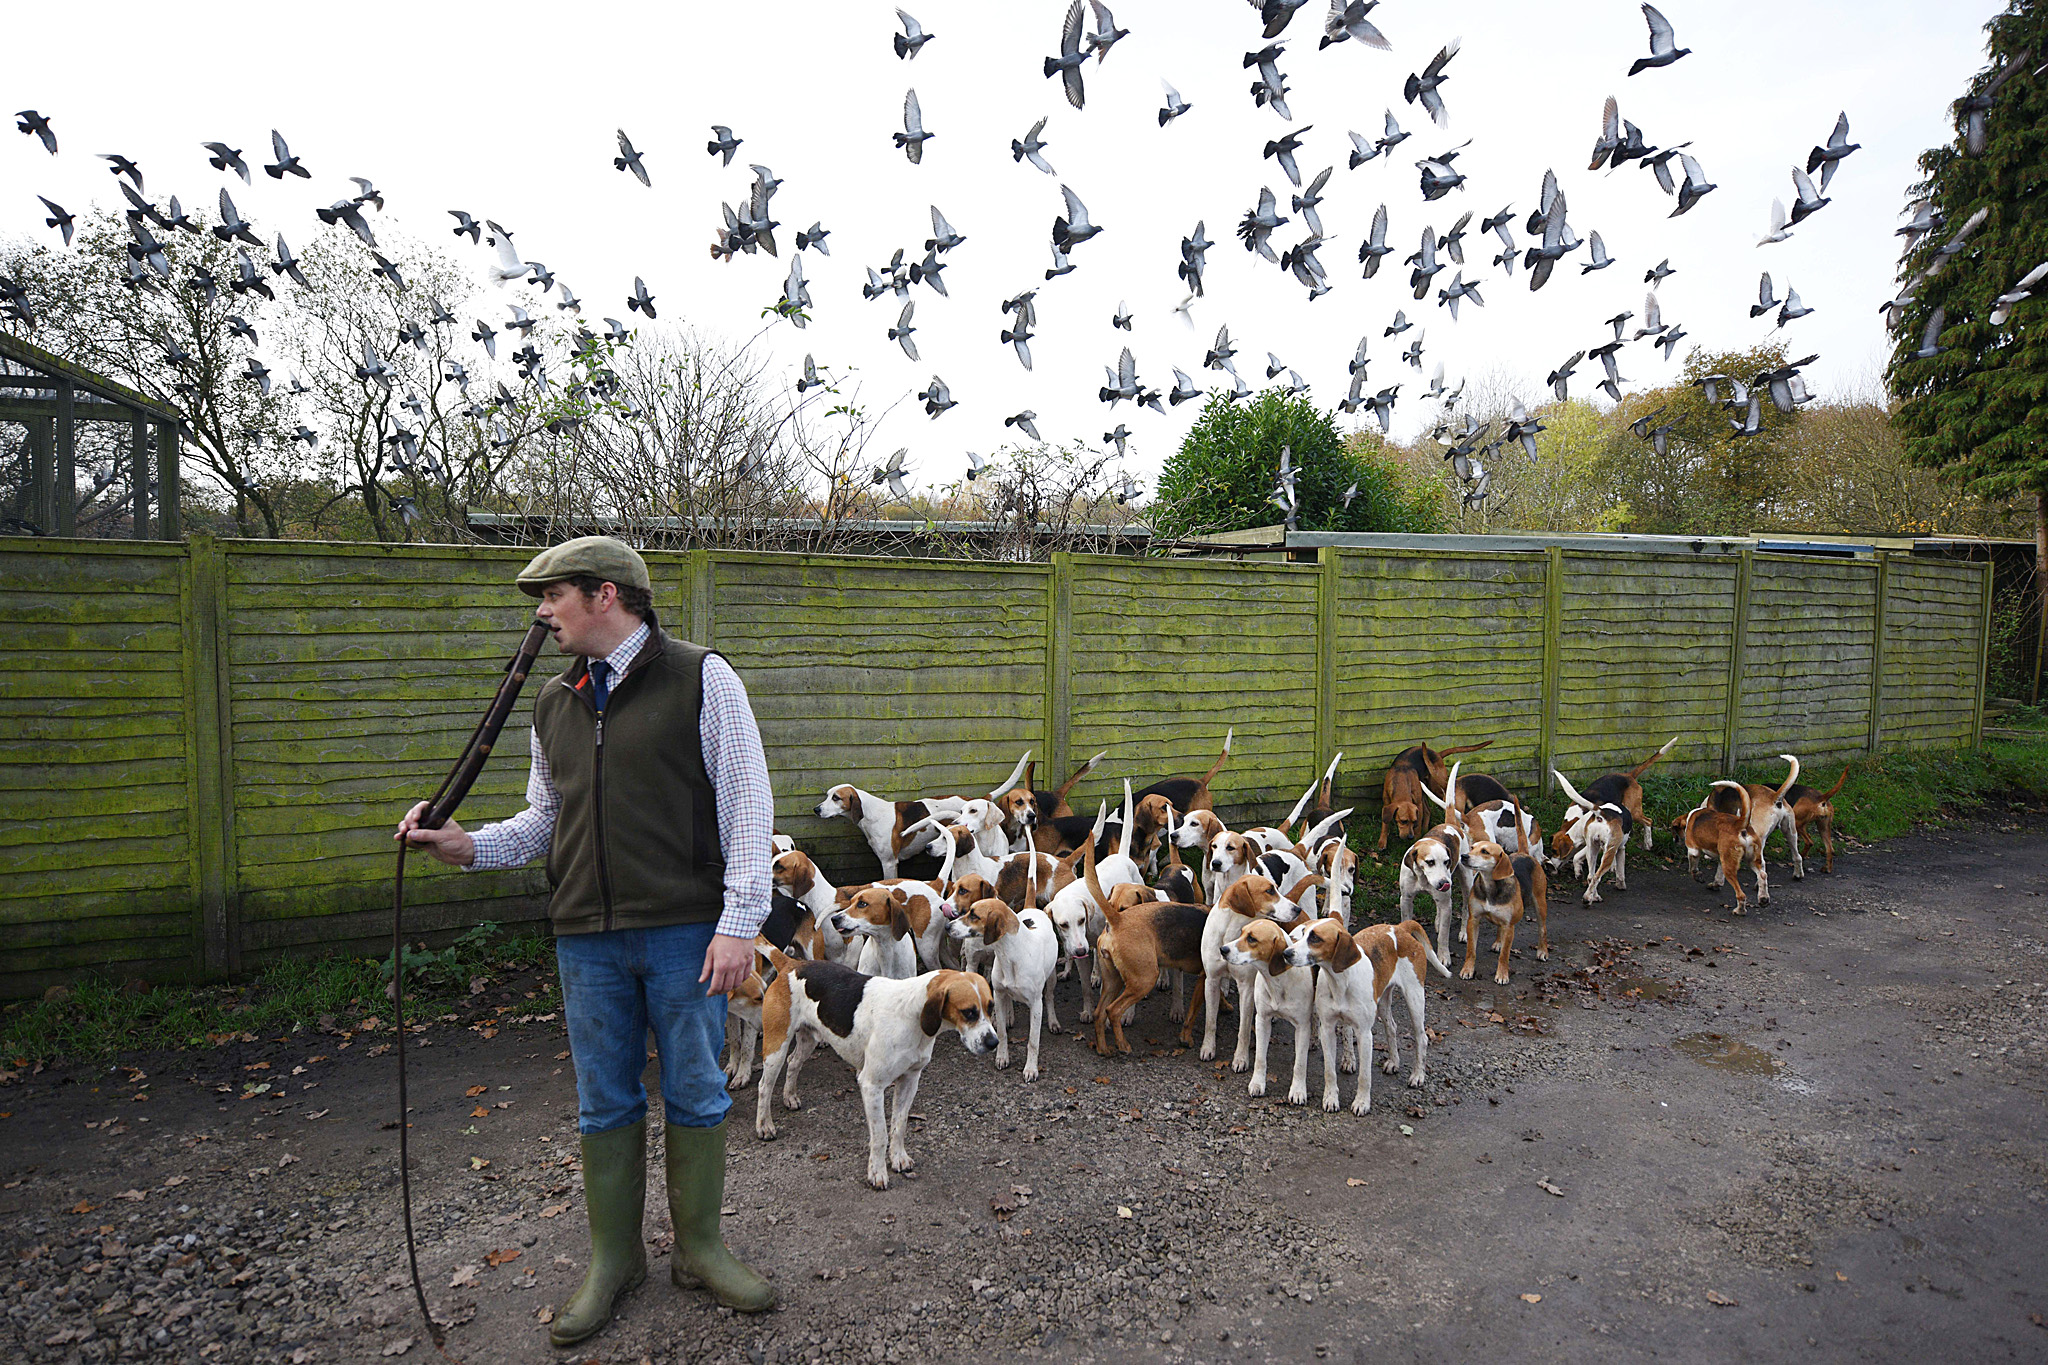 Steven Ashworth, the huntsman of the Hol...Steven Ashworth, the huntsman of the Holcombe Hunt, exercises his hounds near Bury, northern England, on October 31, 2014, before tomorrow's hunt which takes place on the first day of the official hunting season. The Holcombe Hunt is one of the UK's oldest hunts, whose lineage is traceable back to 1086. Today with the prohibition on hunting foxes and other wildlife with dogs in England, the Holcombe Hunt practice 'trail hunting', where a scent is laid down in a trail for the hounds to follow, simulating the hounds catching the scent of the hunt's quarry.  AFP PHOTO / OLI SCARFFOLI SCARFF/AFP/Getty Images